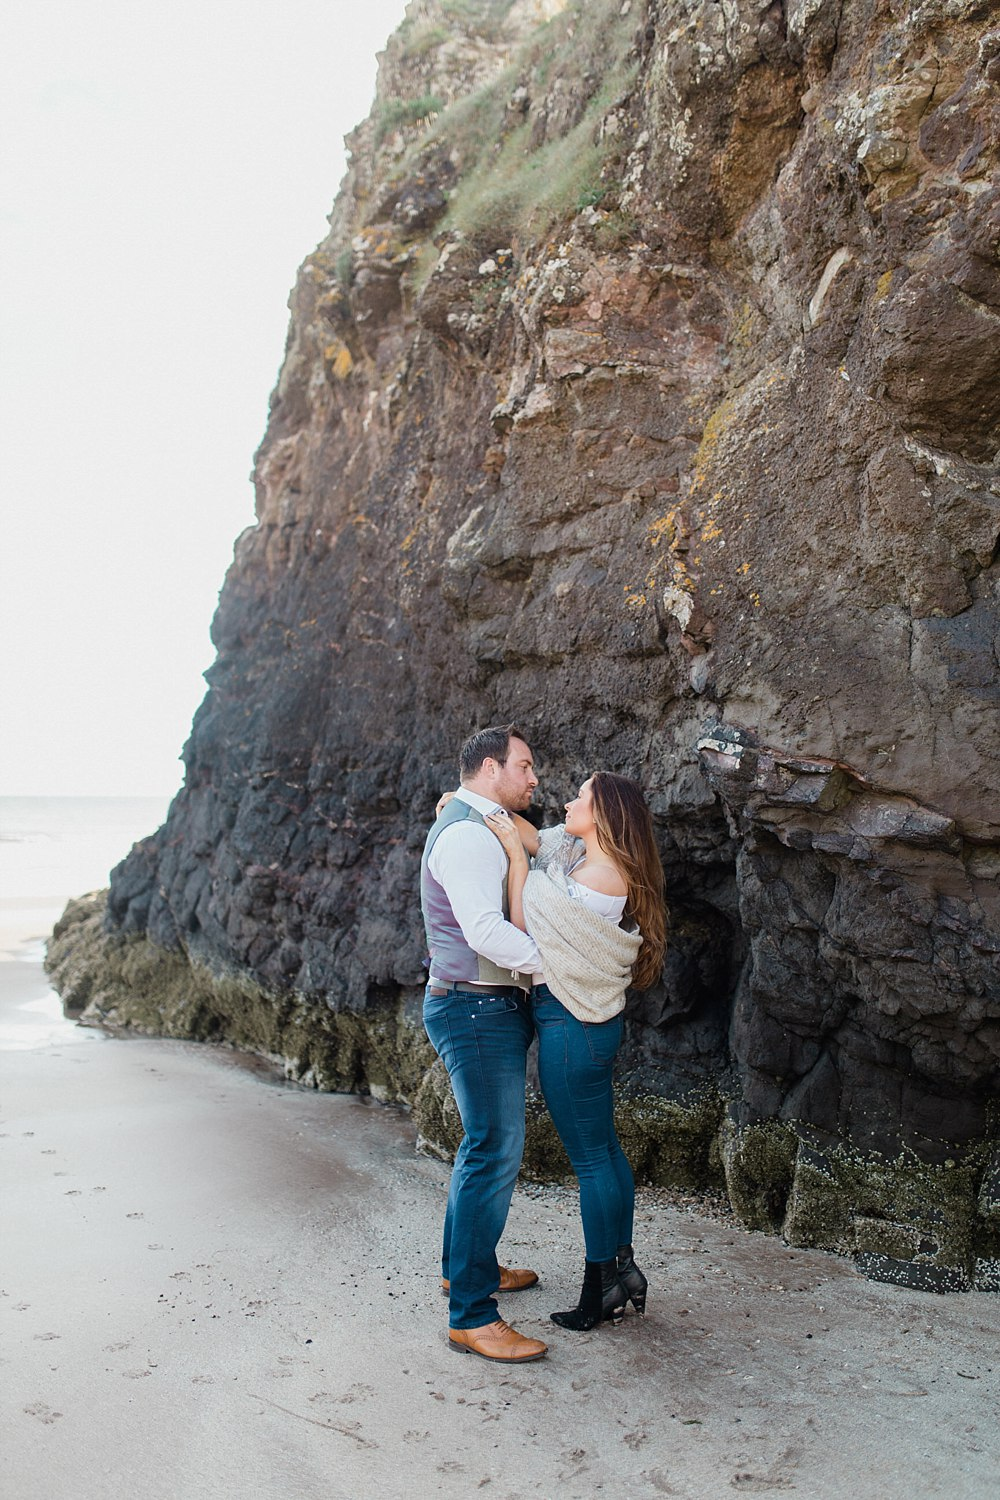 Fine Art Wedding Photographers,The Gibsons,beach engagement shoot,beach engagement shoot scotland,beaches scotland,engagement aberdeen,engagement photographers glasgow,light and bright,light and bright wedding photographers scotland,